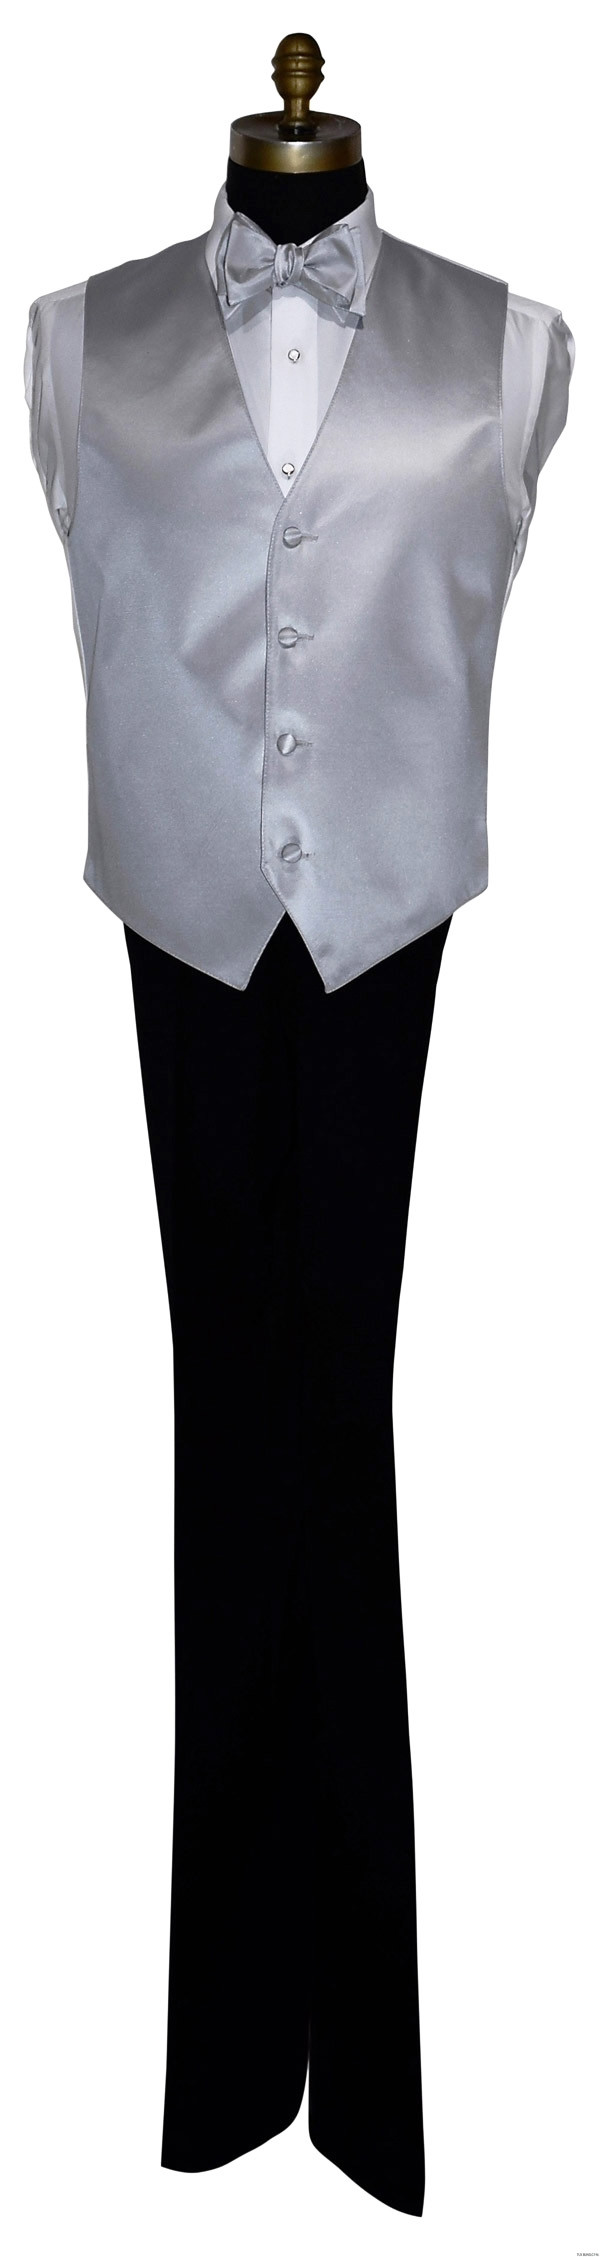 silver vest and bowtie on tuxbling.com for tuxedos